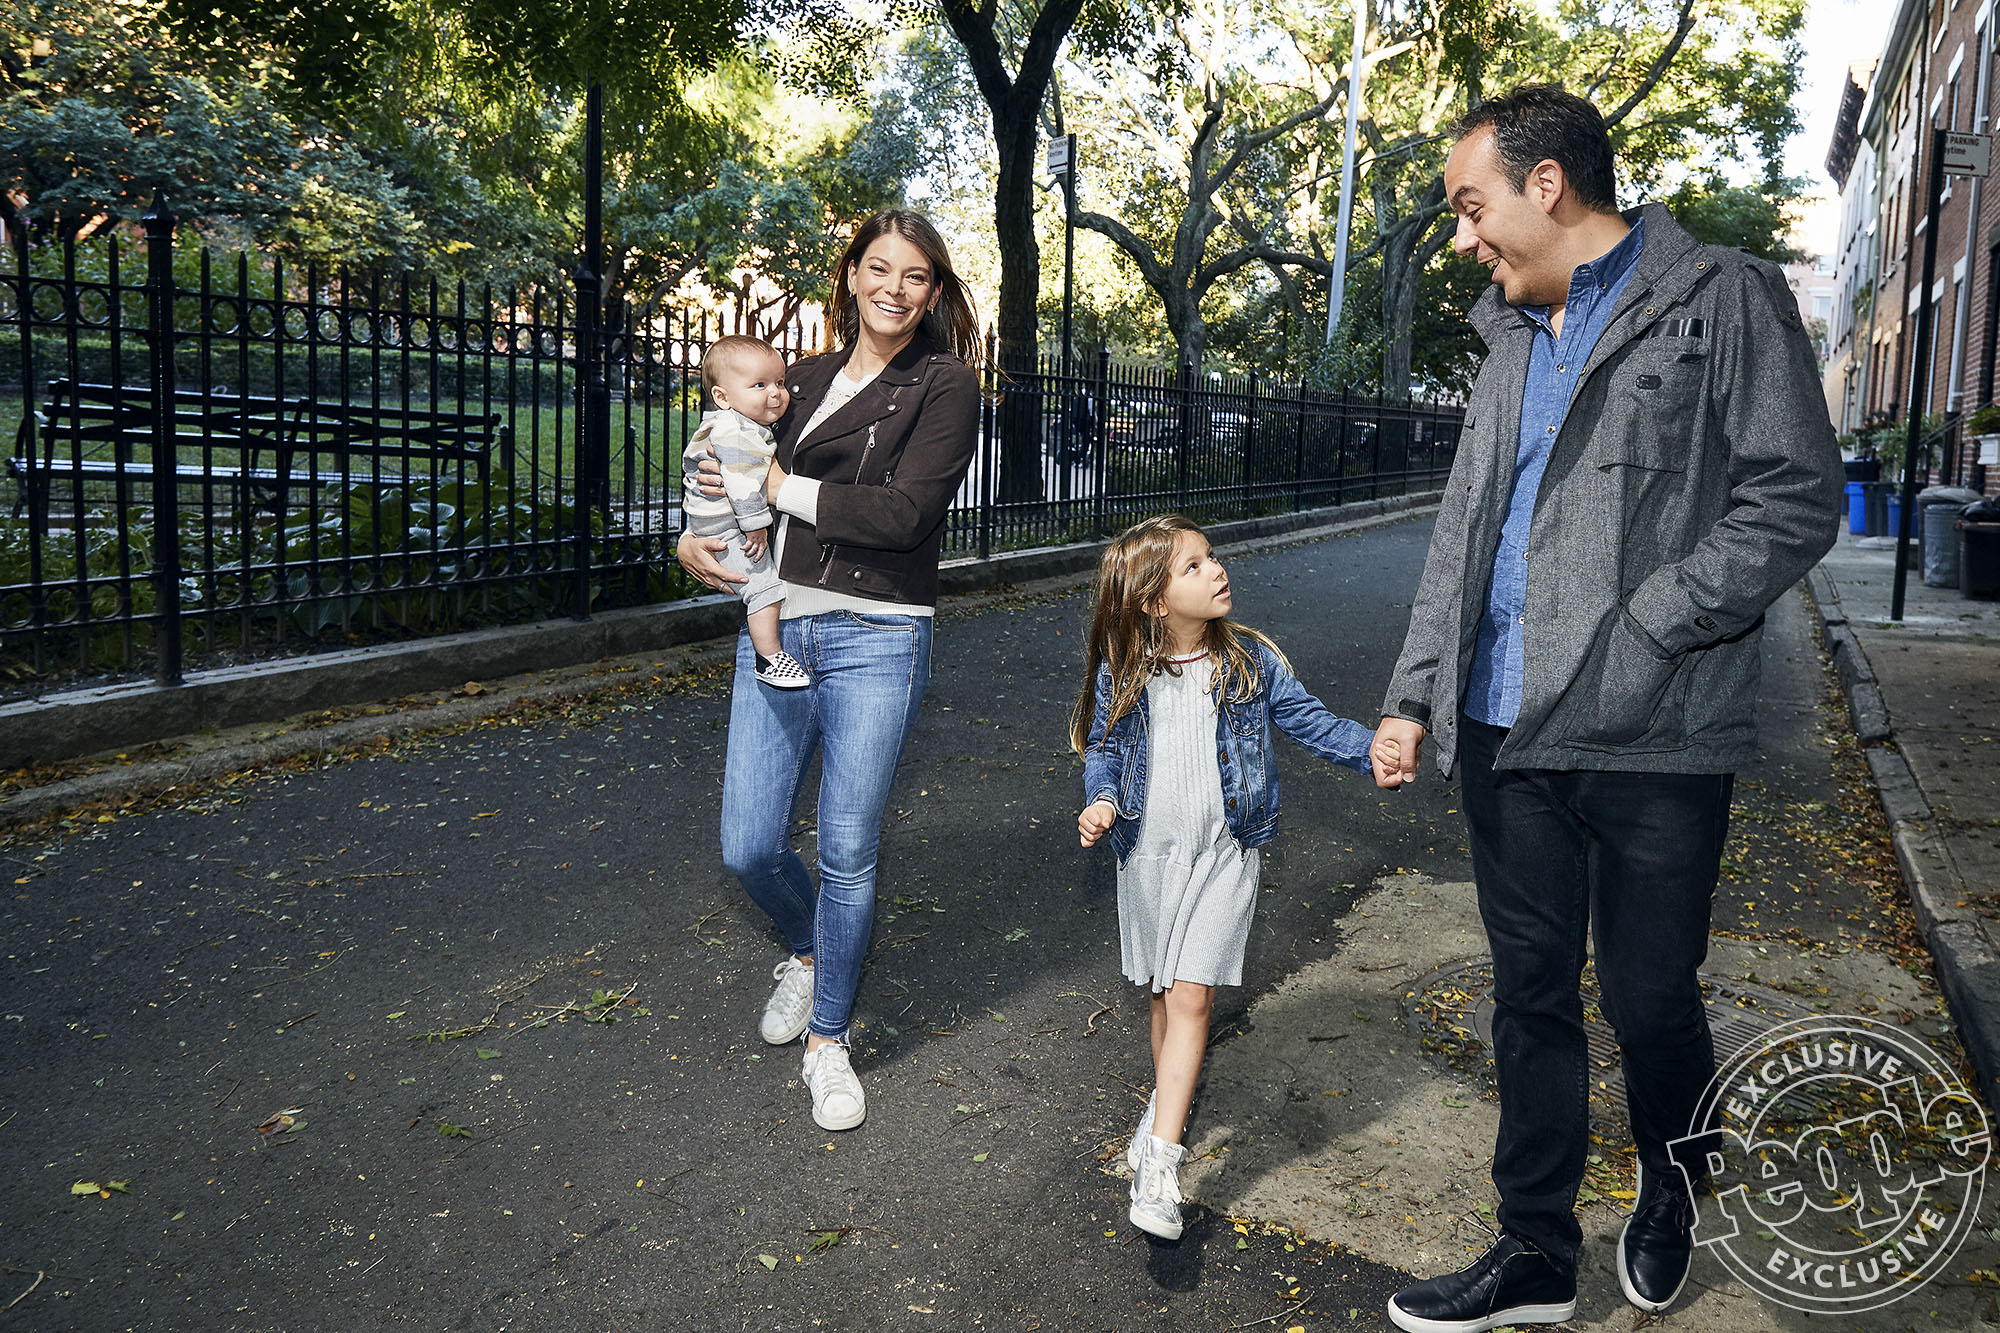 Gail Simmons Reflects on 12 Years of Filming Top Chef—and Her Road to a Happy Family of Four